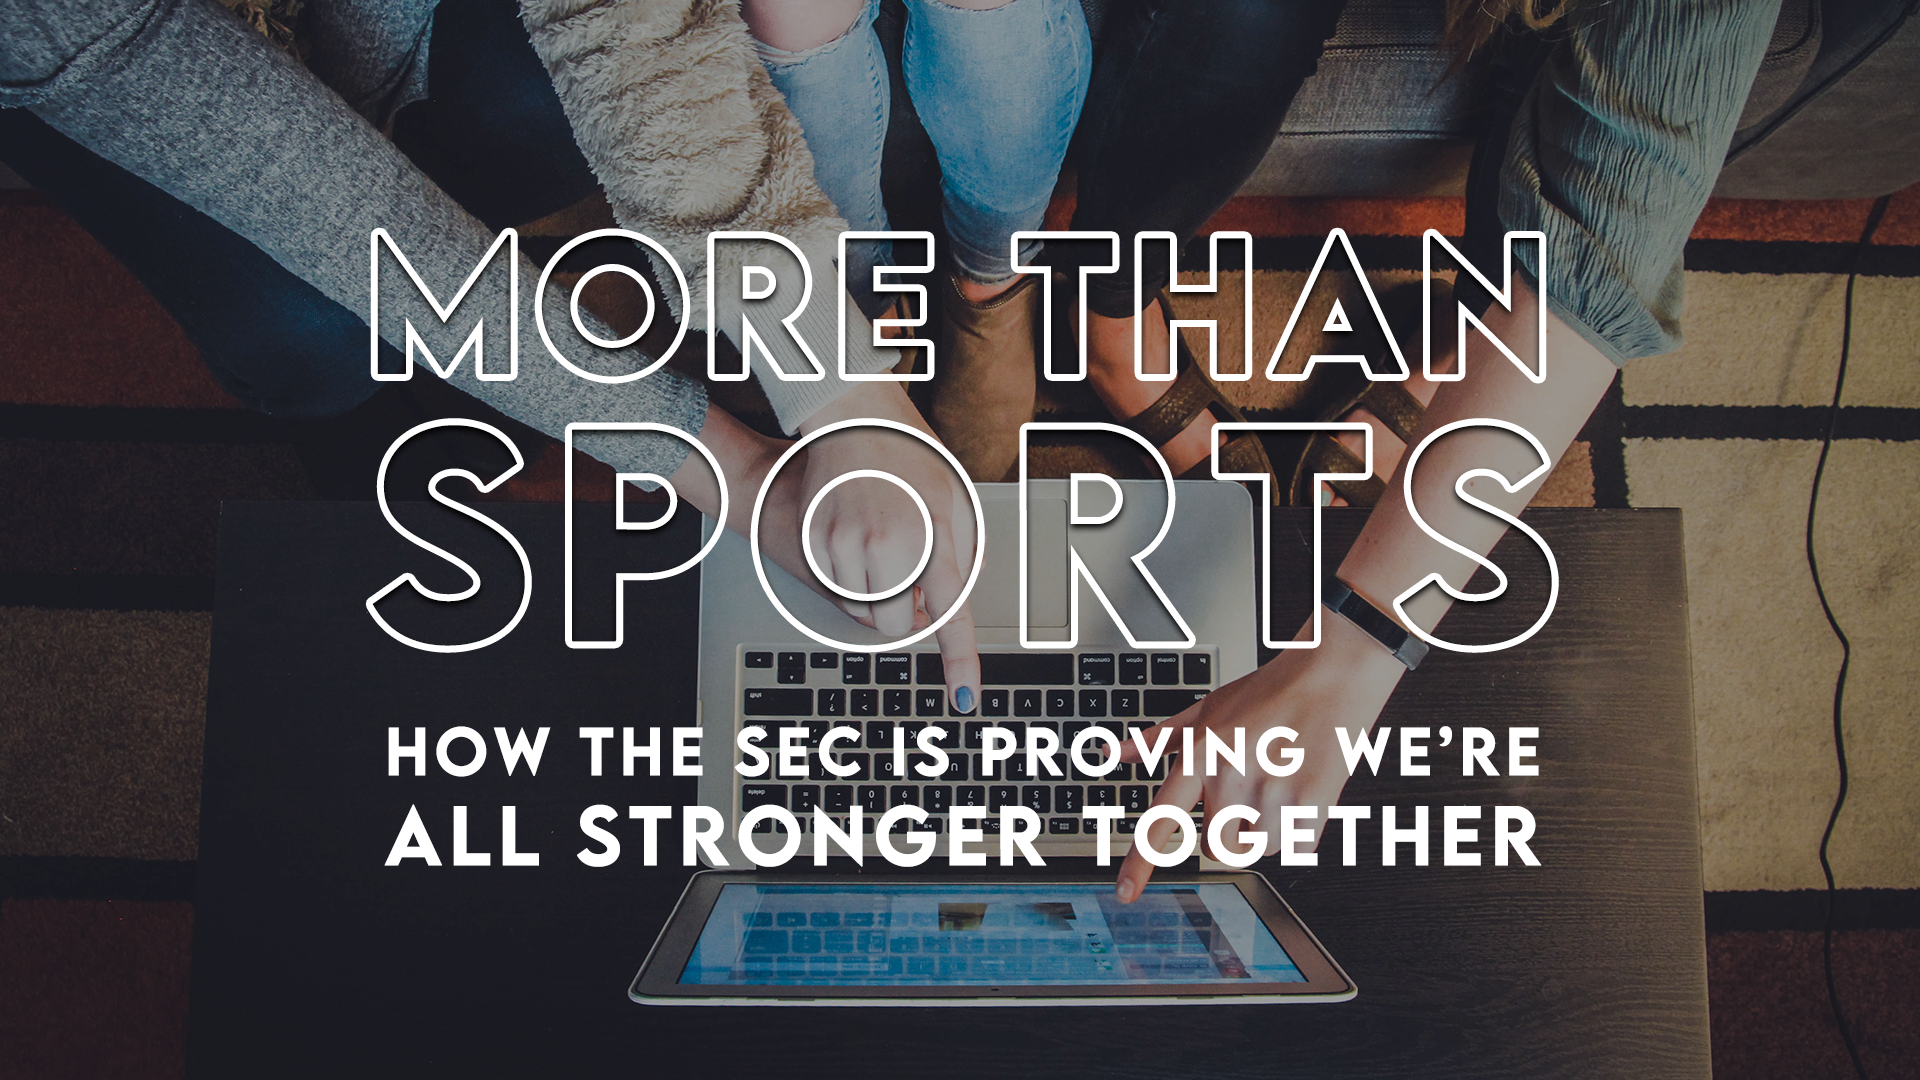 MORE Than Sports: How the SEC is Proving We're Stronger Together